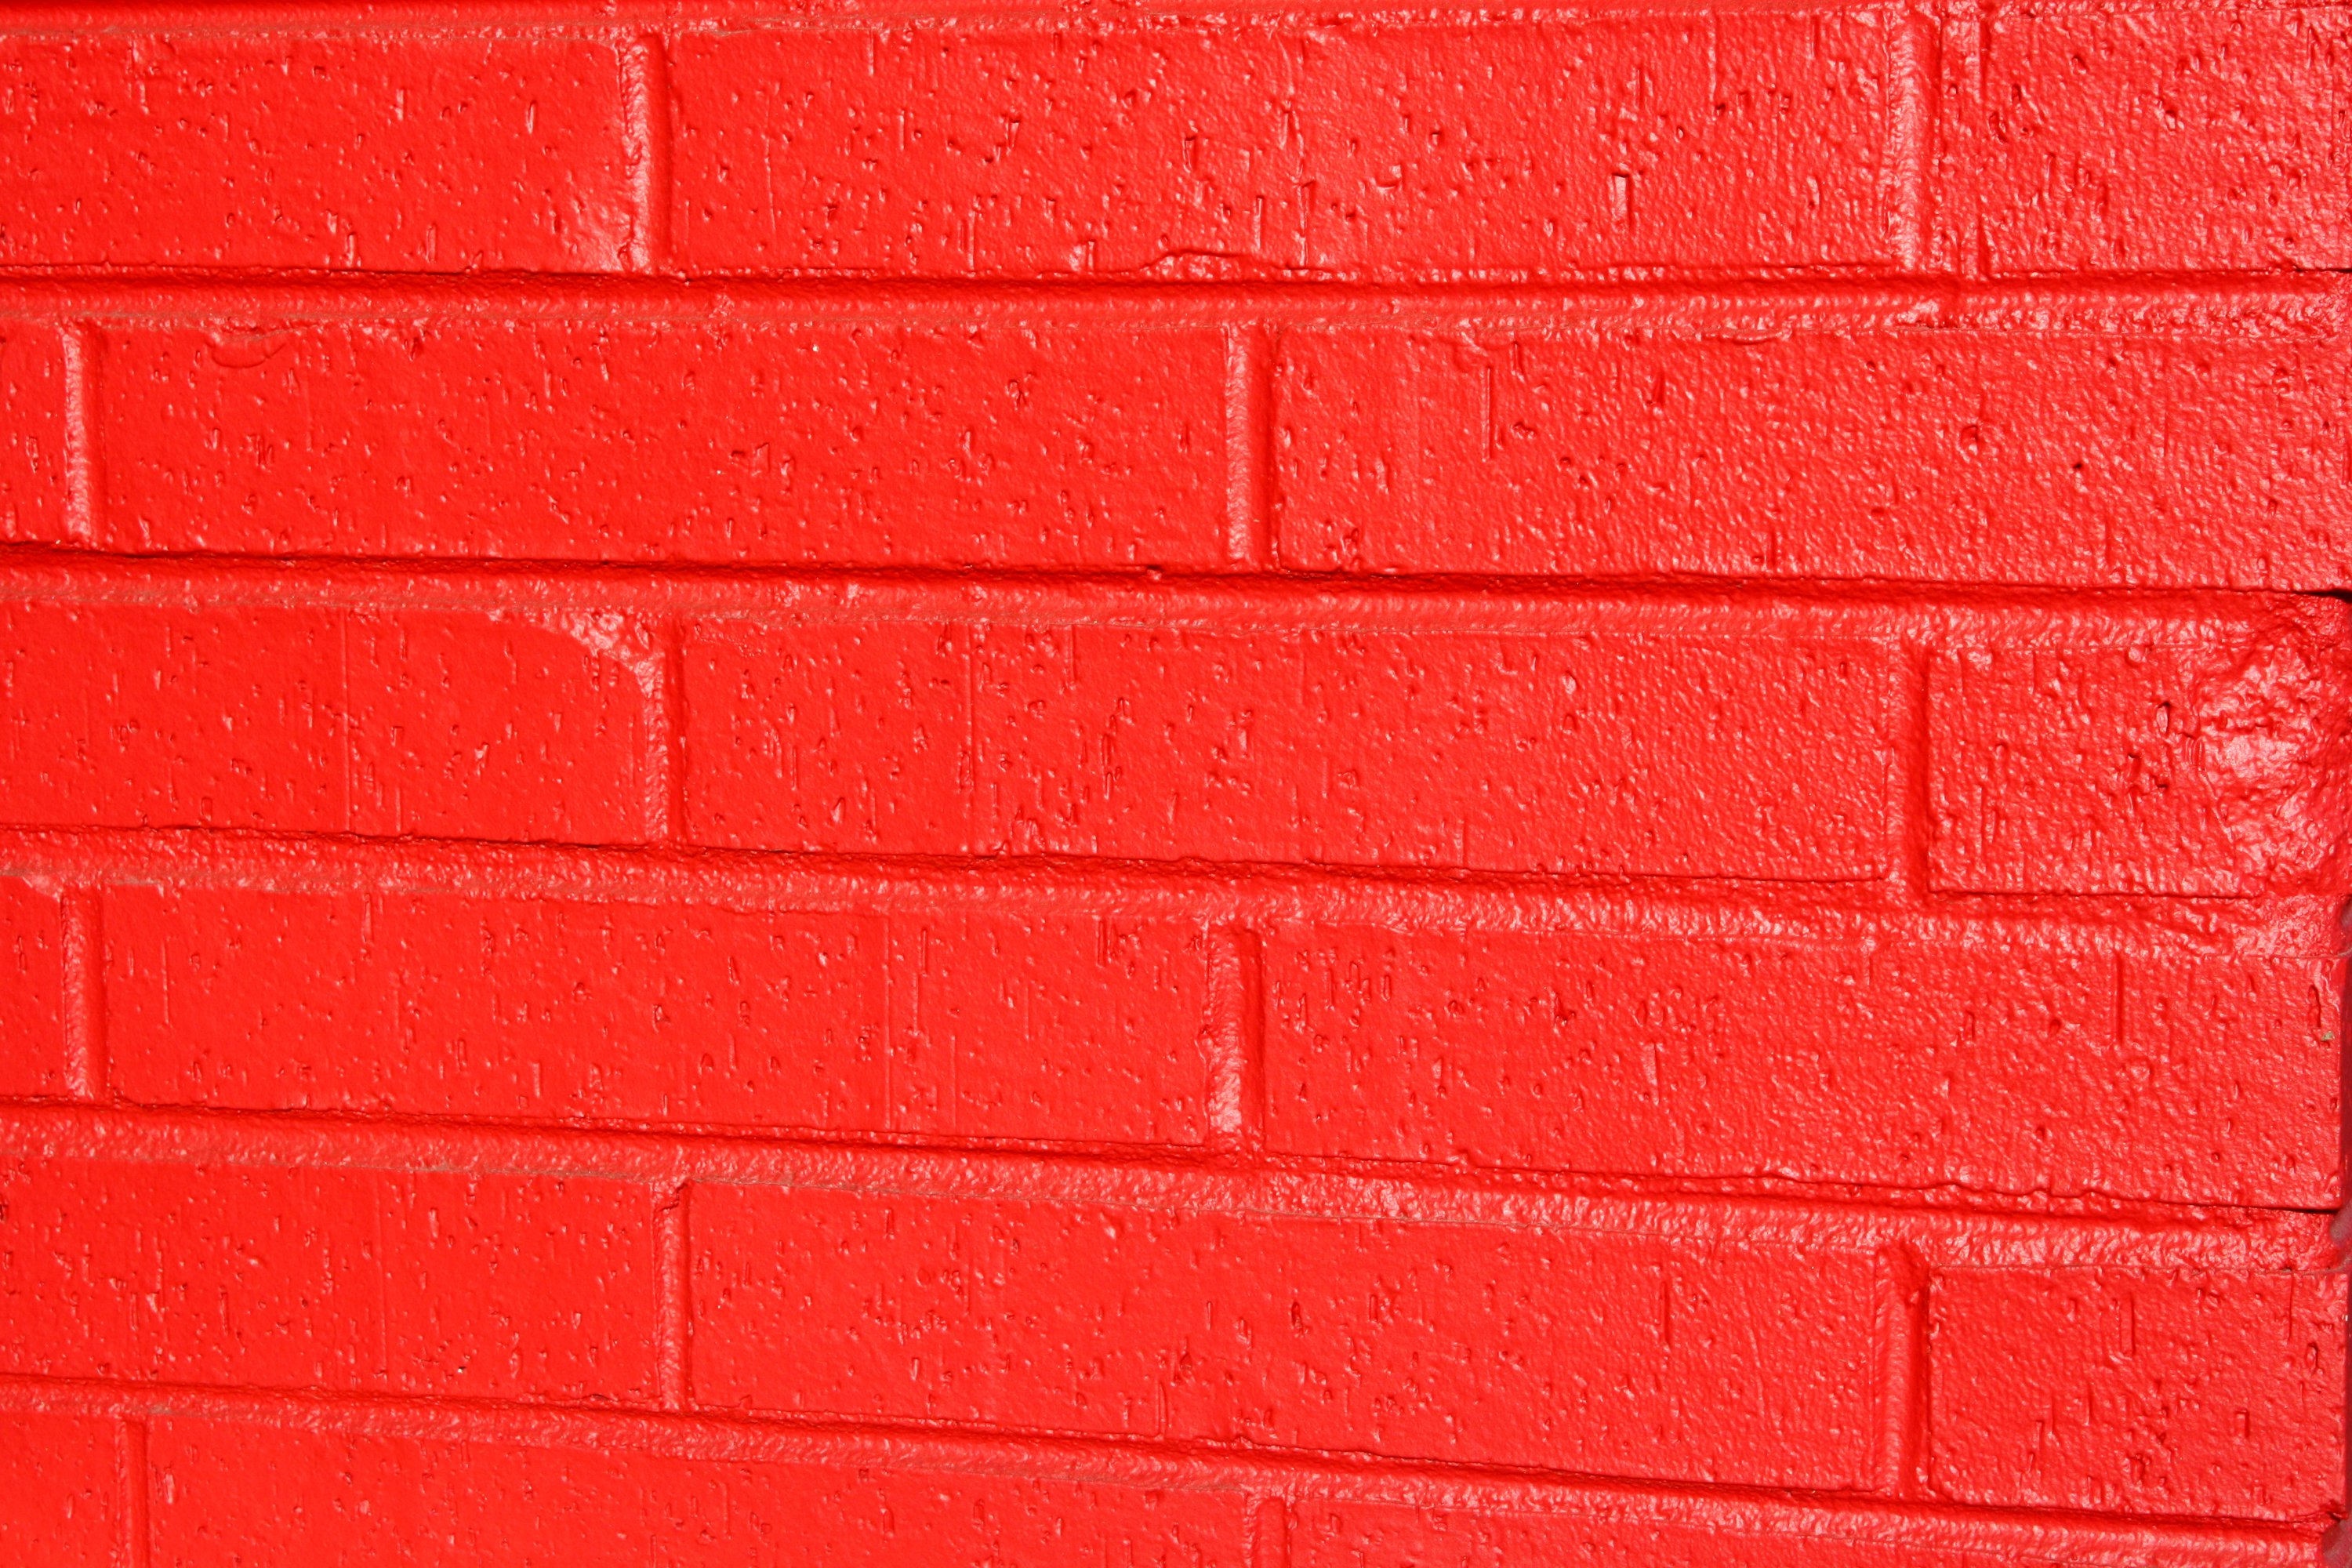 red painted brick wall picture free photograph photos